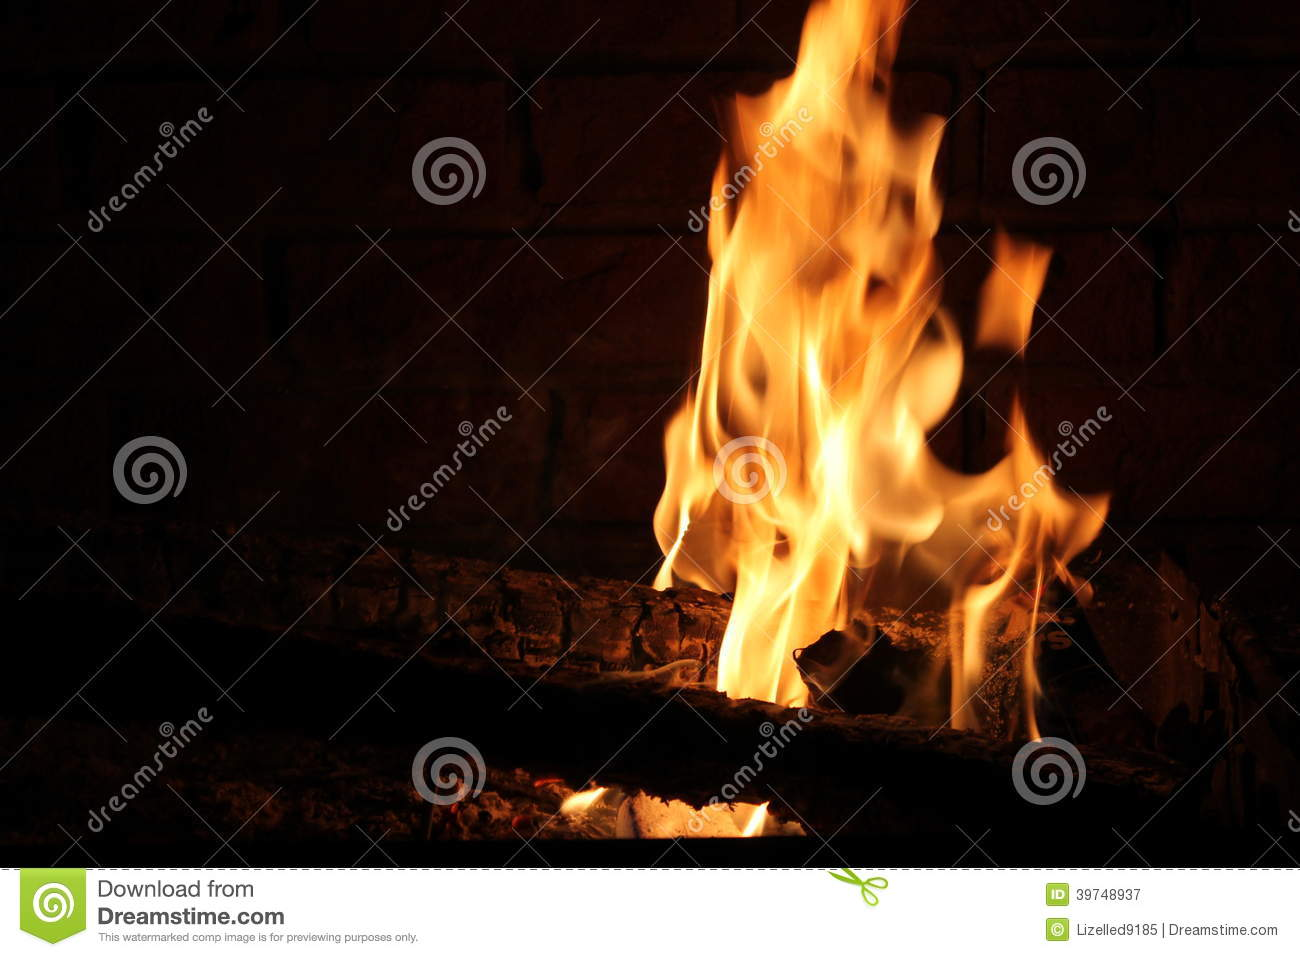 firewood the burns the hottest and Create an inviting glow and help warm your home with the help from this hardwood firewood best wood i have used, but it did burn a vibrant hot fire earth.